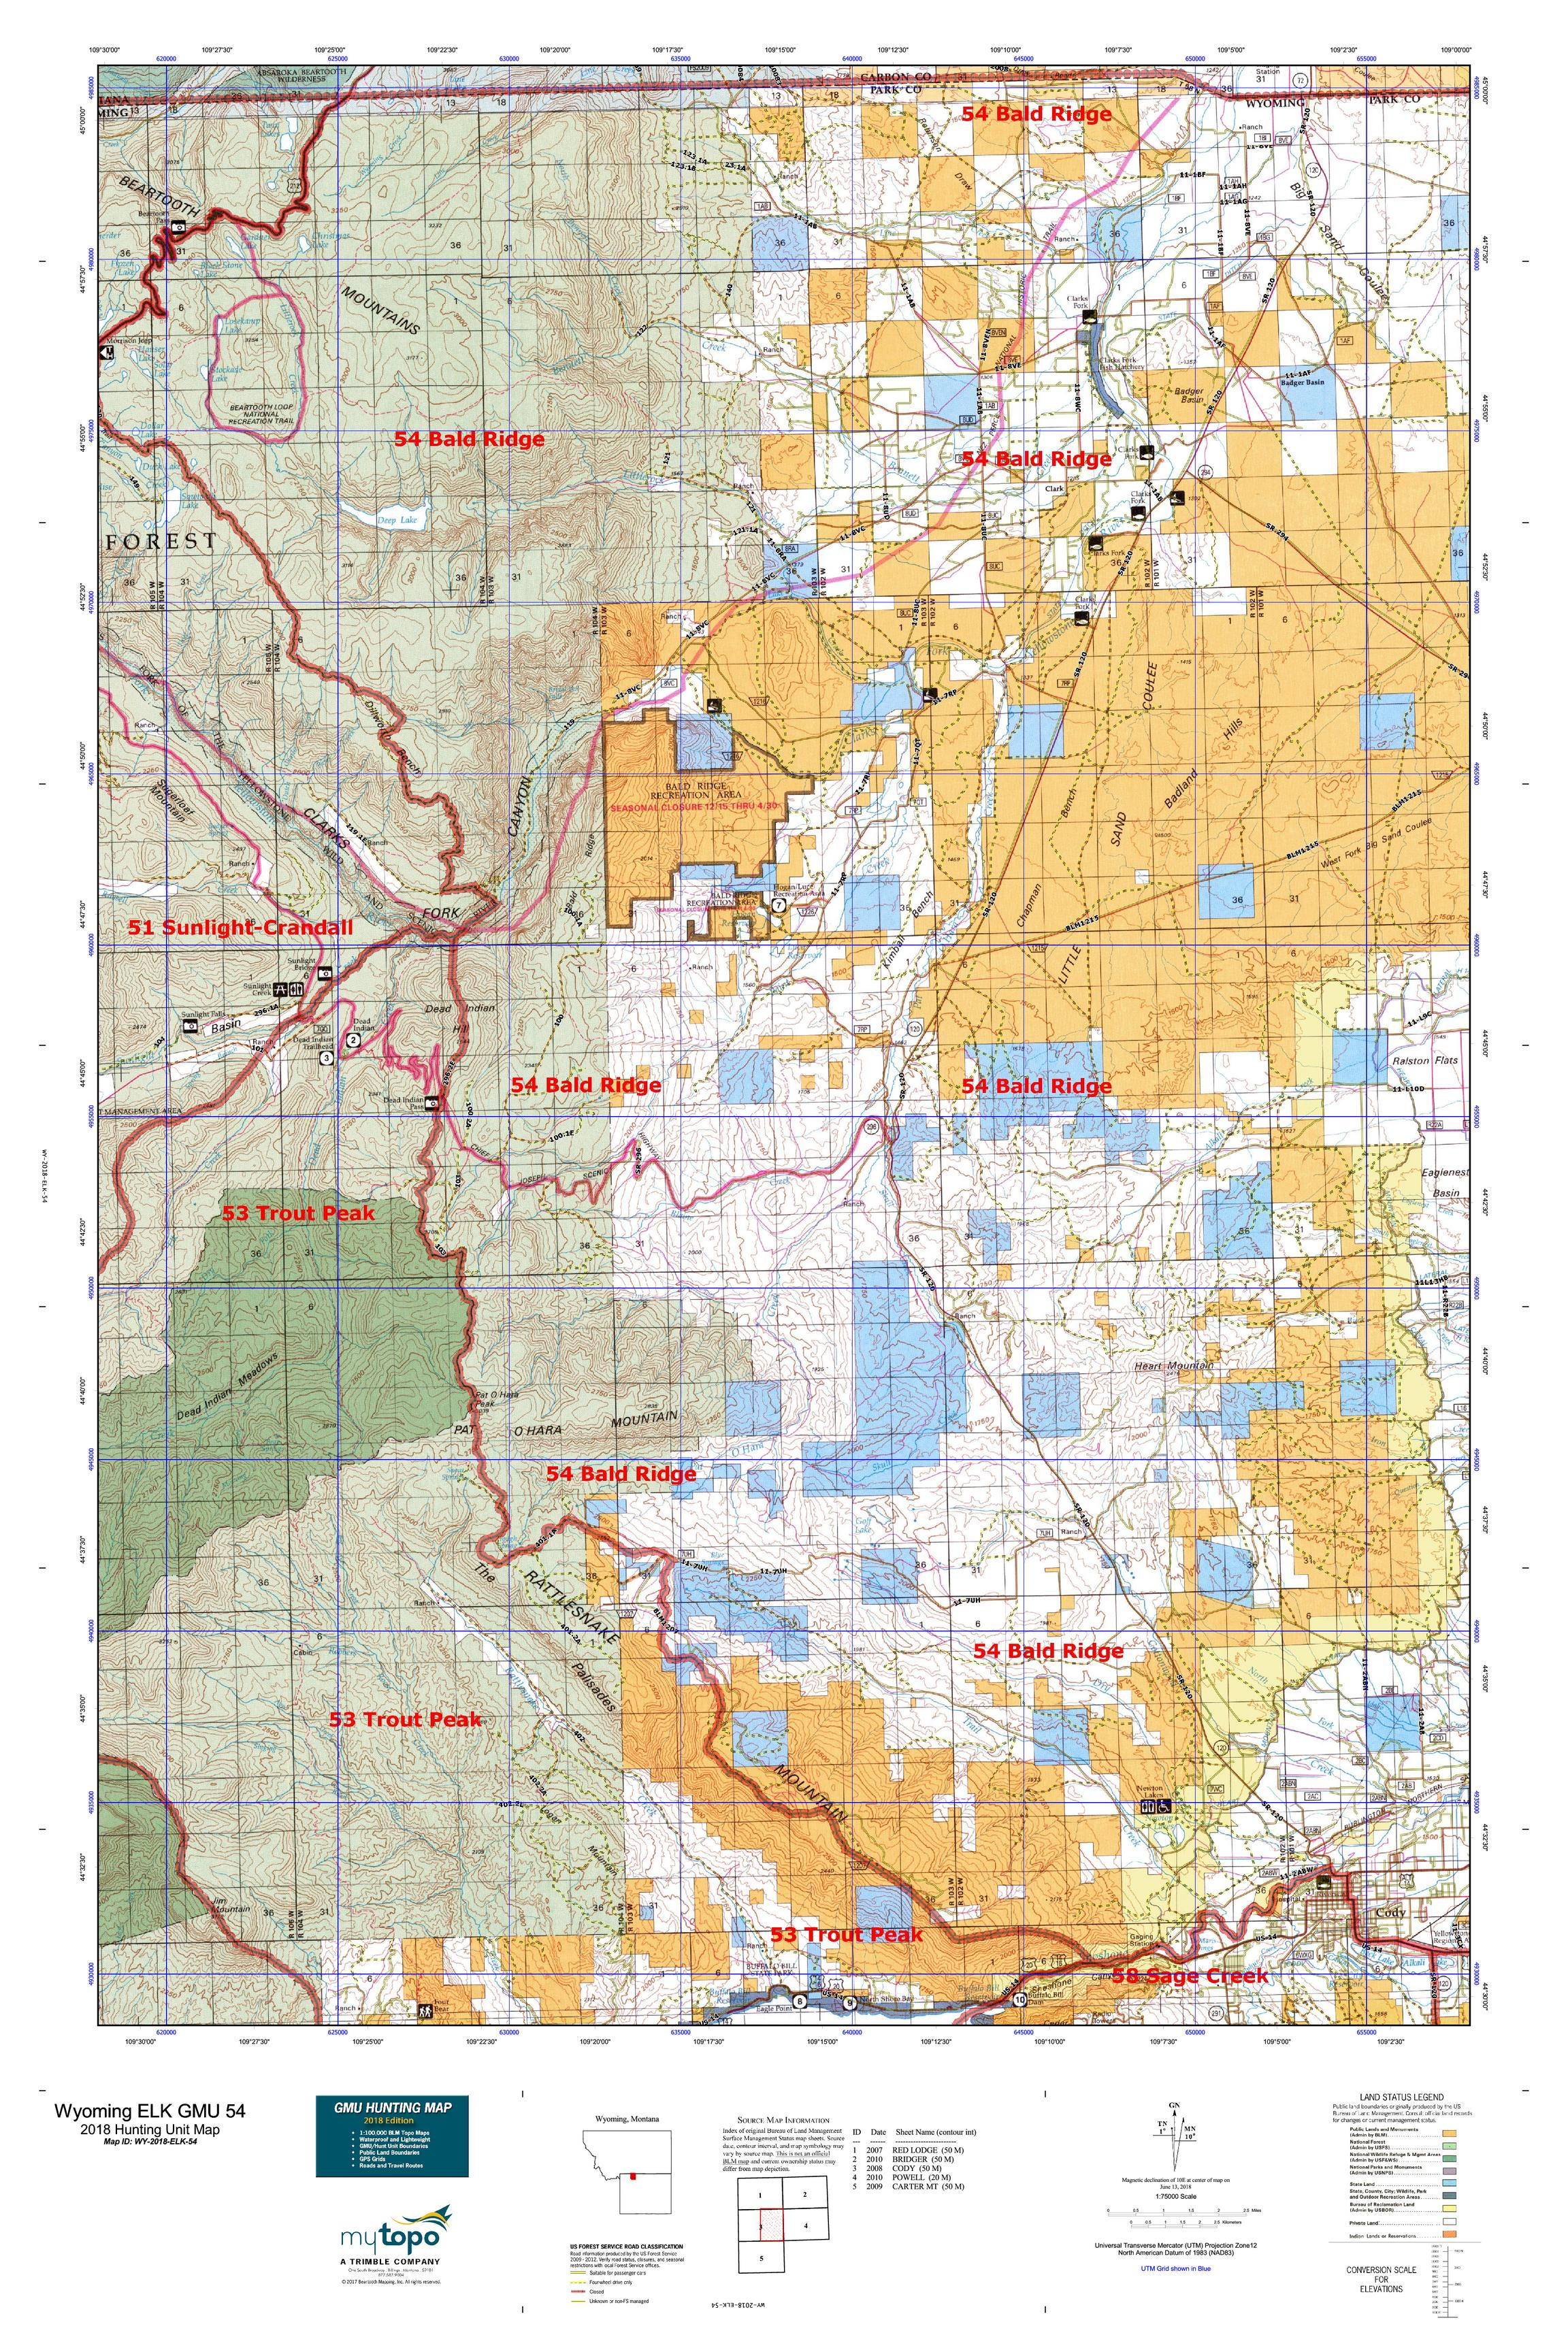 Wyoming ELK GMU 54 Map | MyTopo on